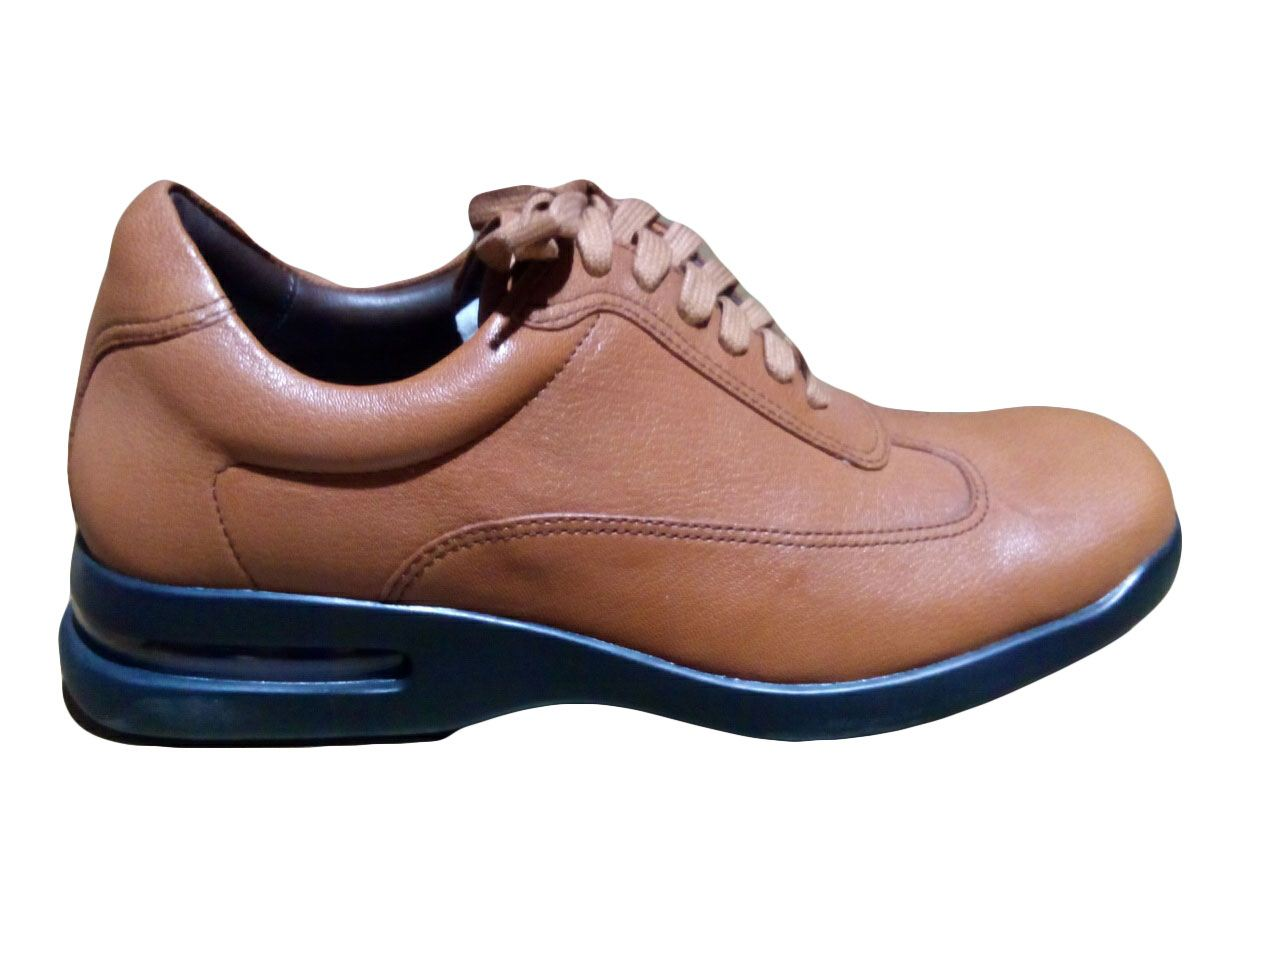 Mens Cole Haan Shoes With Nike Air